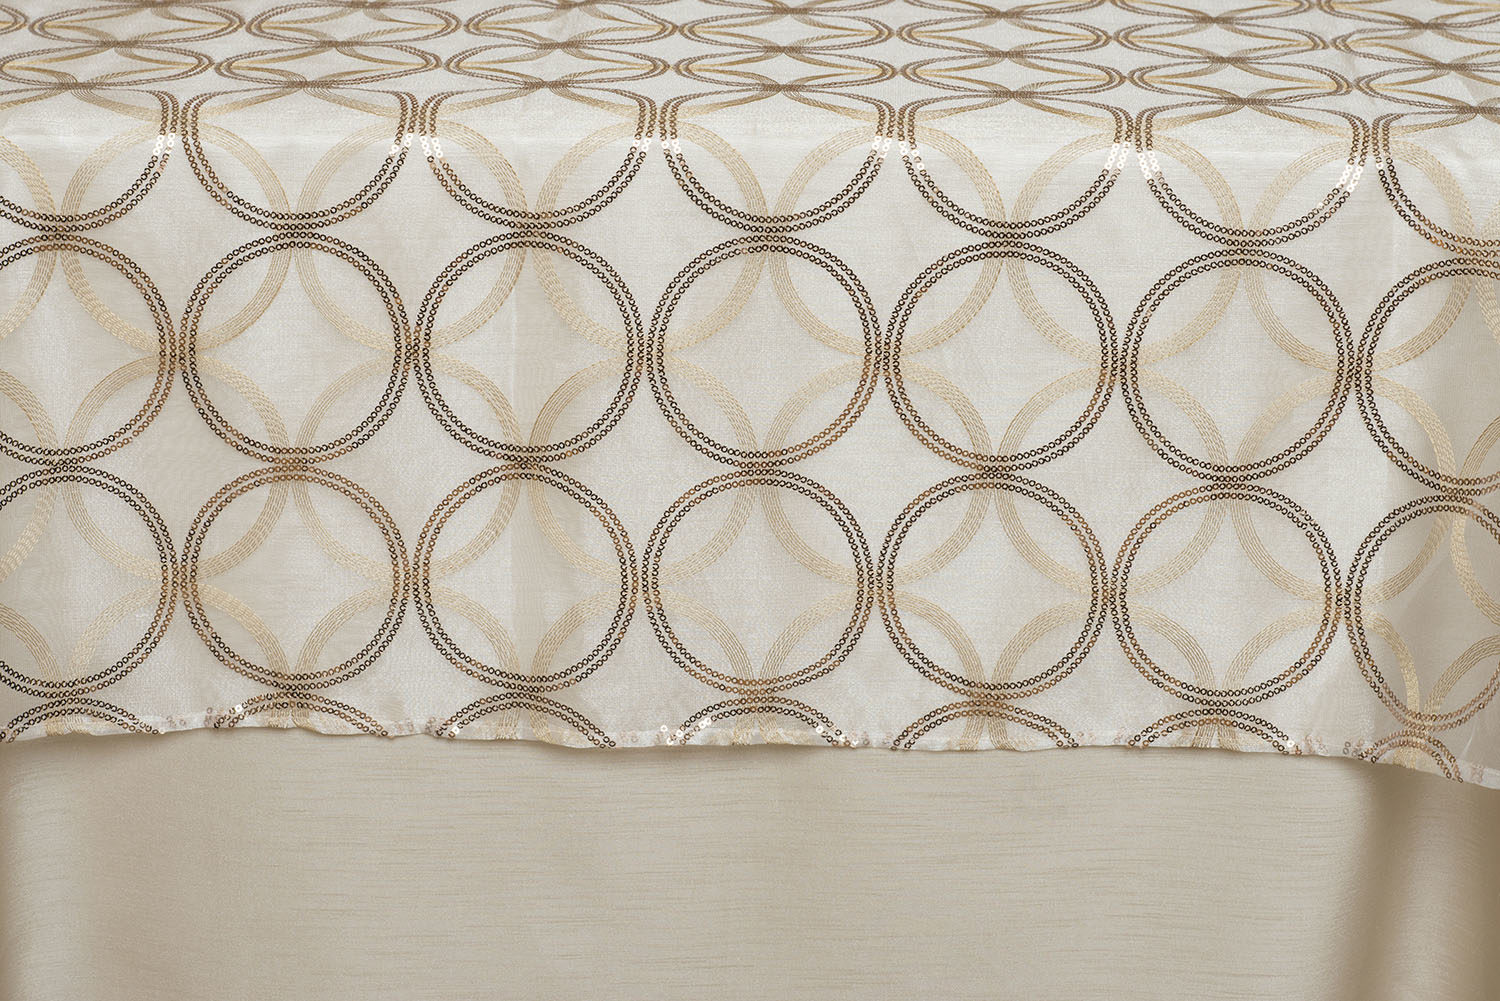 Sheer Layered Circles Gold Embroidery And Sequins Table Toppers Centerpiece Linen Decor